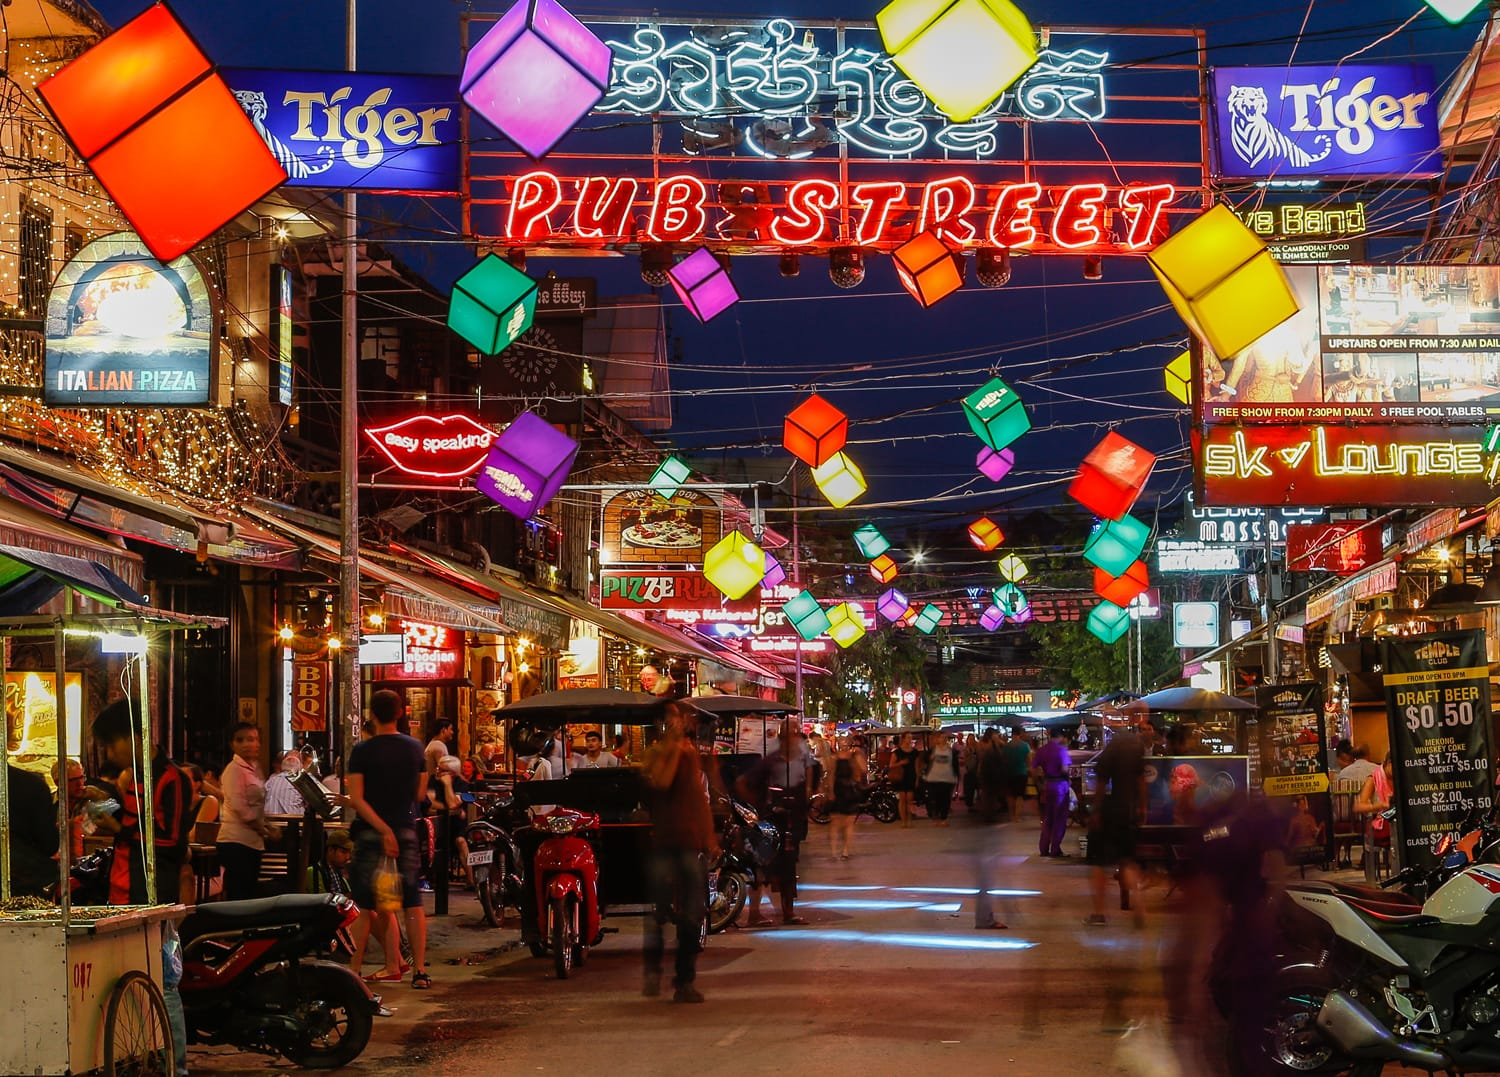 Bars, restaurants and lights along Pub Street in Siem Reap Cambodia at night